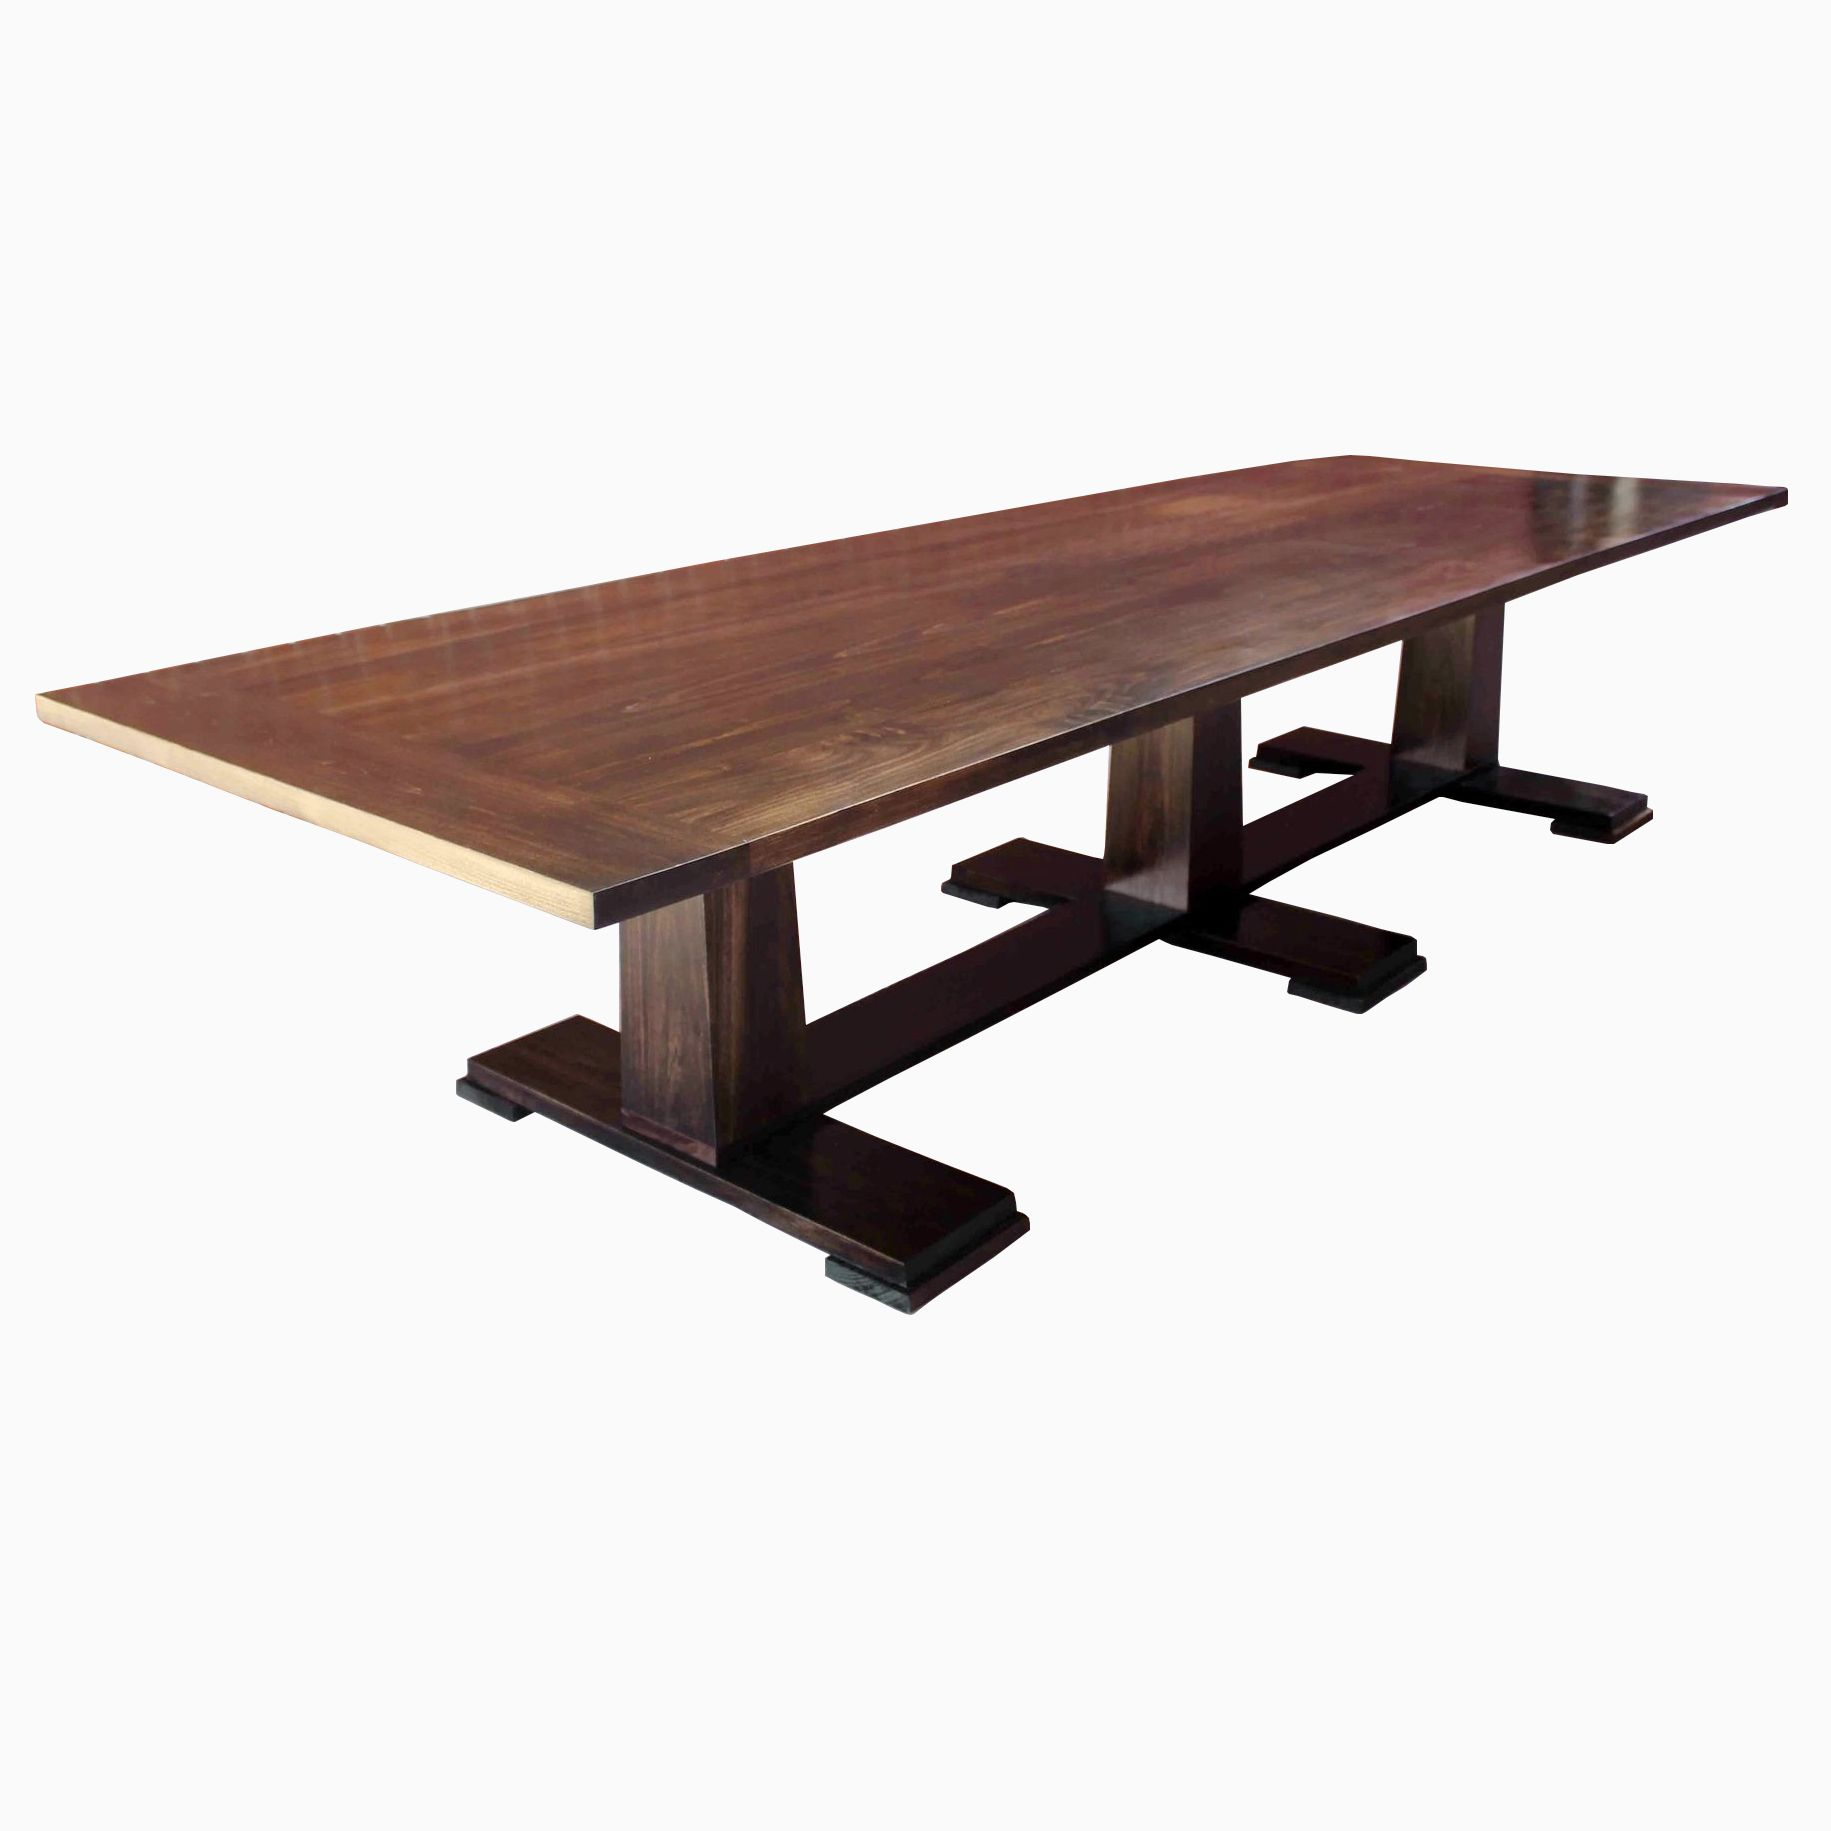 Buy A Hand Crafted Walnut Table, Made To Order From Art